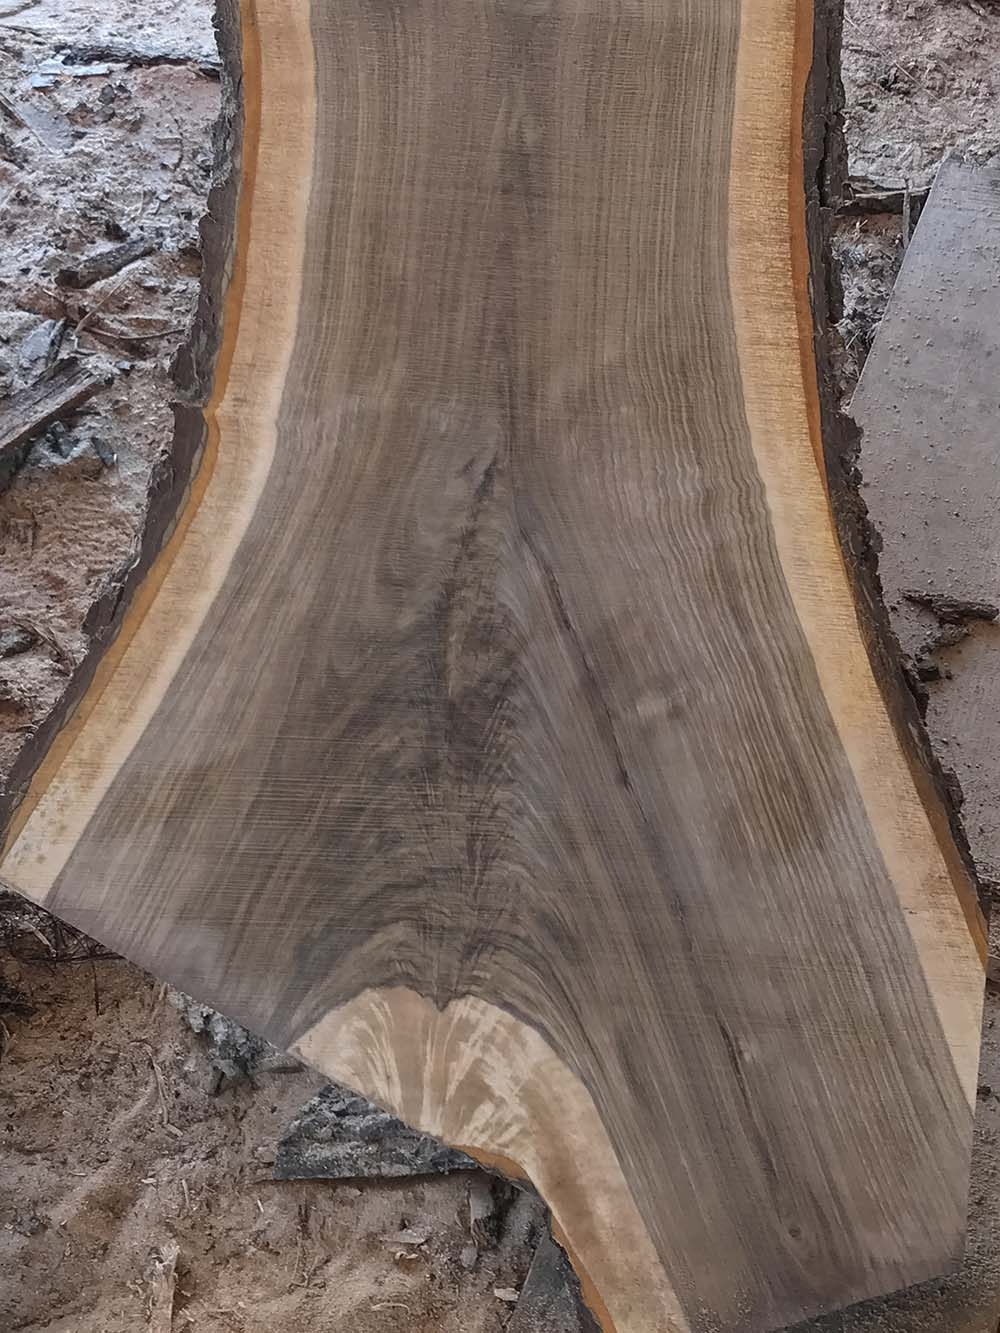 Live Edge Walnut Crotch Slab. Black Walnut Crotch Slab